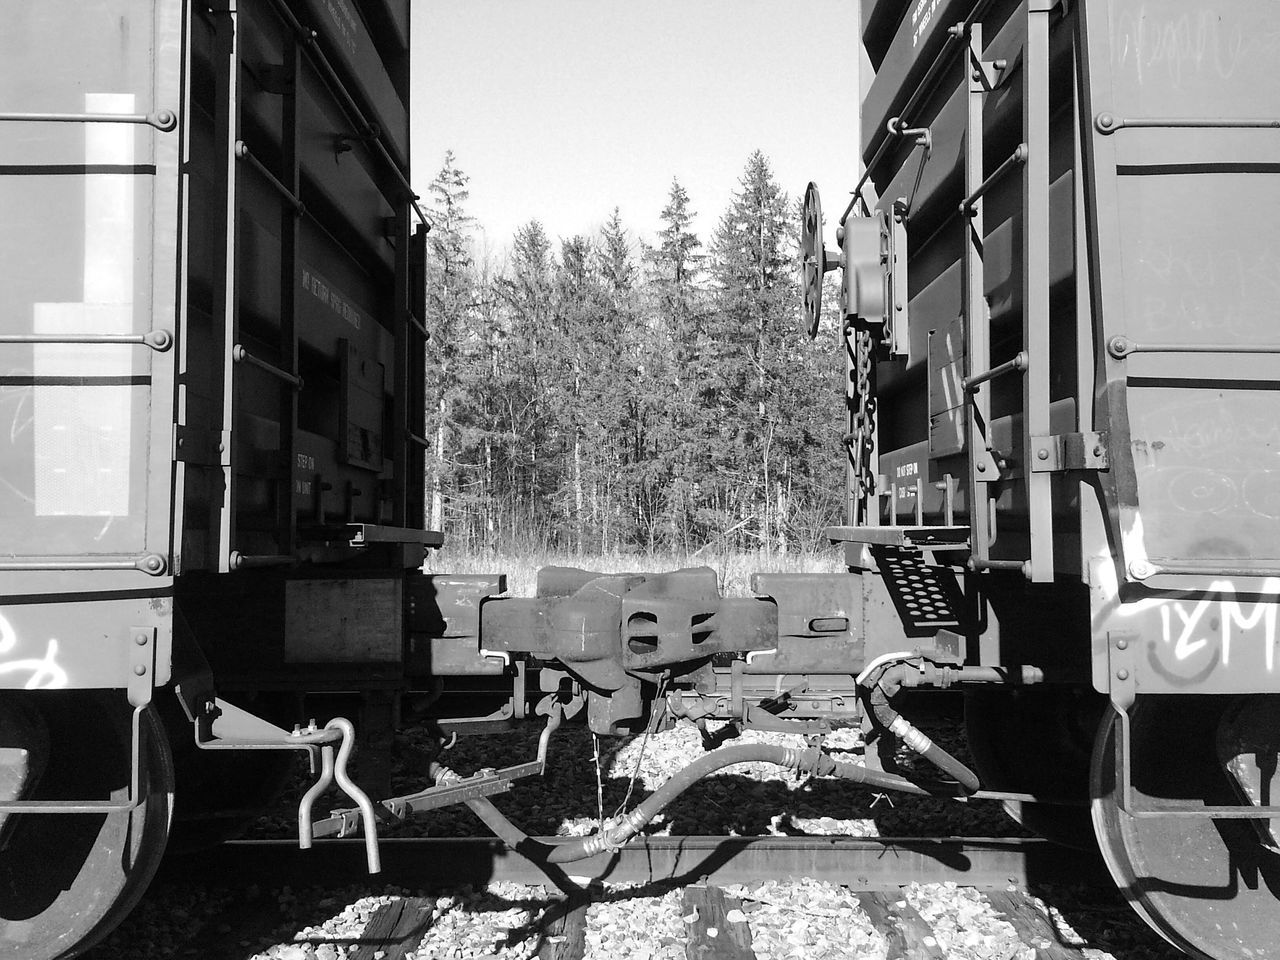 Heavy-duty... Bnw_connection for Bnw_friday_eyeemchallenge Train Coupling Linked Trees Treeline Frame Within A Frame Two Is Better Than One Monochrome Photography The Great Outdoors - 2017 EyeEm Awards